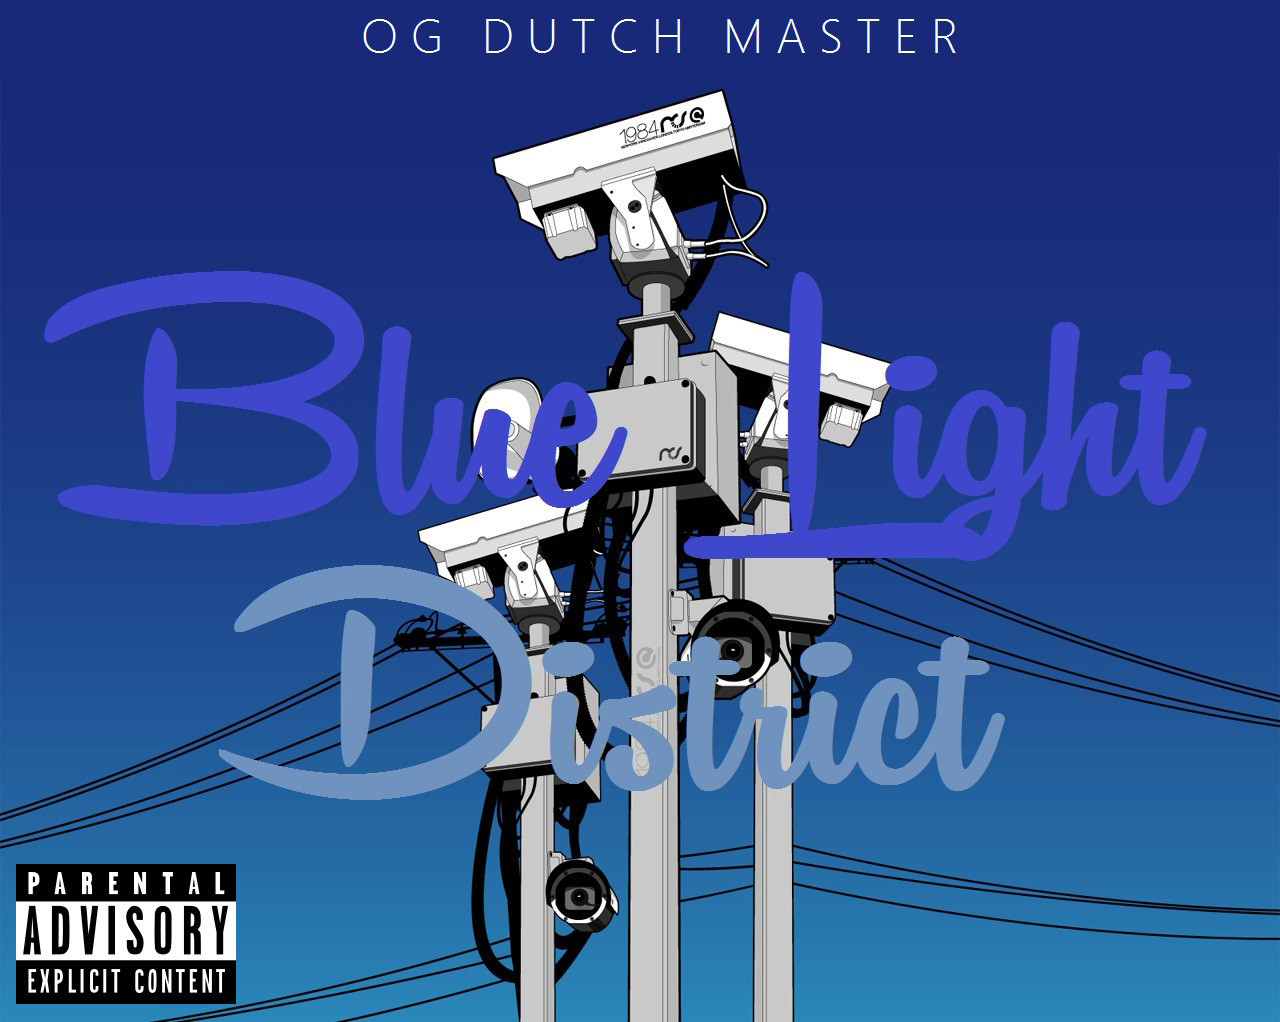 Baltimore album reviews [Pictures] - OG Dutch Master,